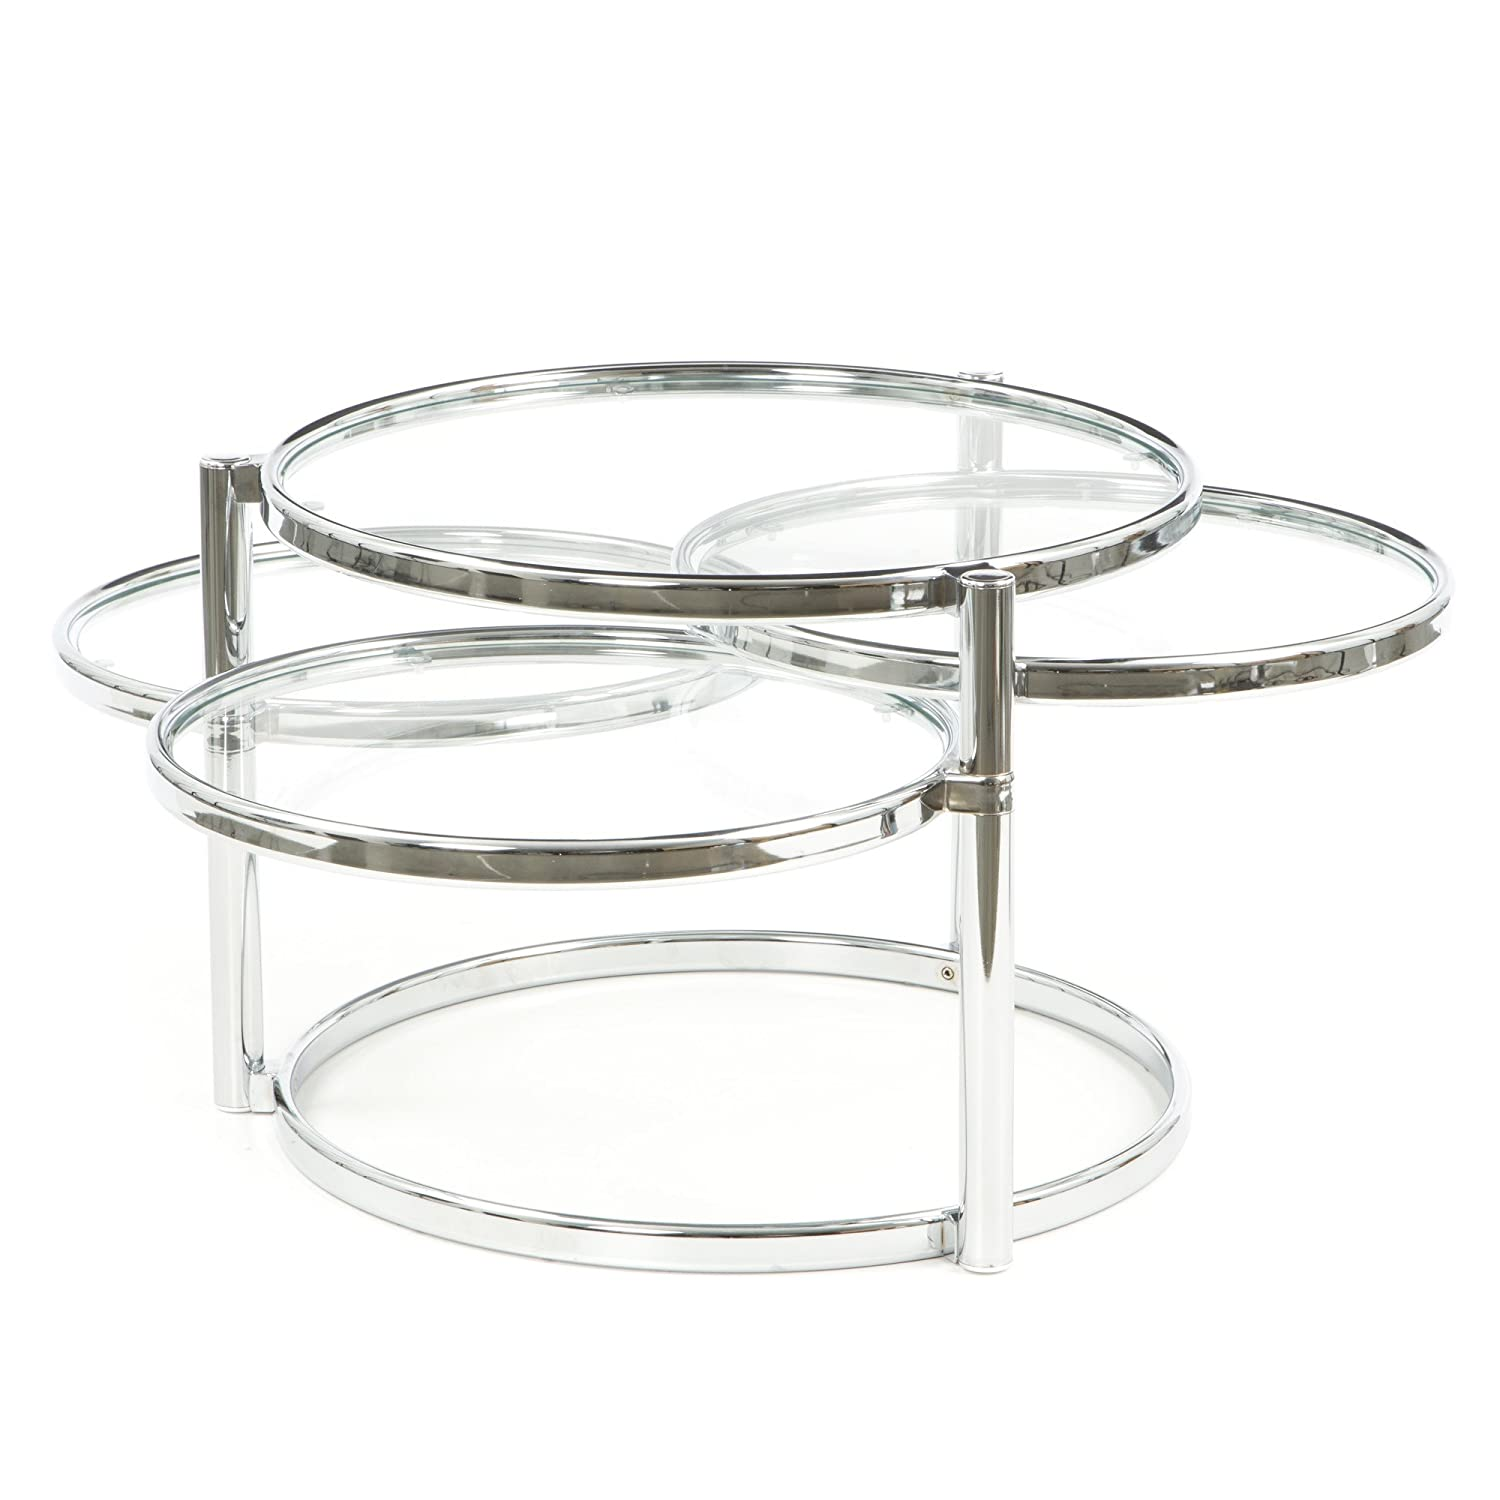 New spec cota 15 motion sofa end coffee table modern style new spec cota 15 motion sofa end coffee table modern style contemporary design tempered glass 4 round table tops with chrome legs amazon home kitchen geotapseo Images